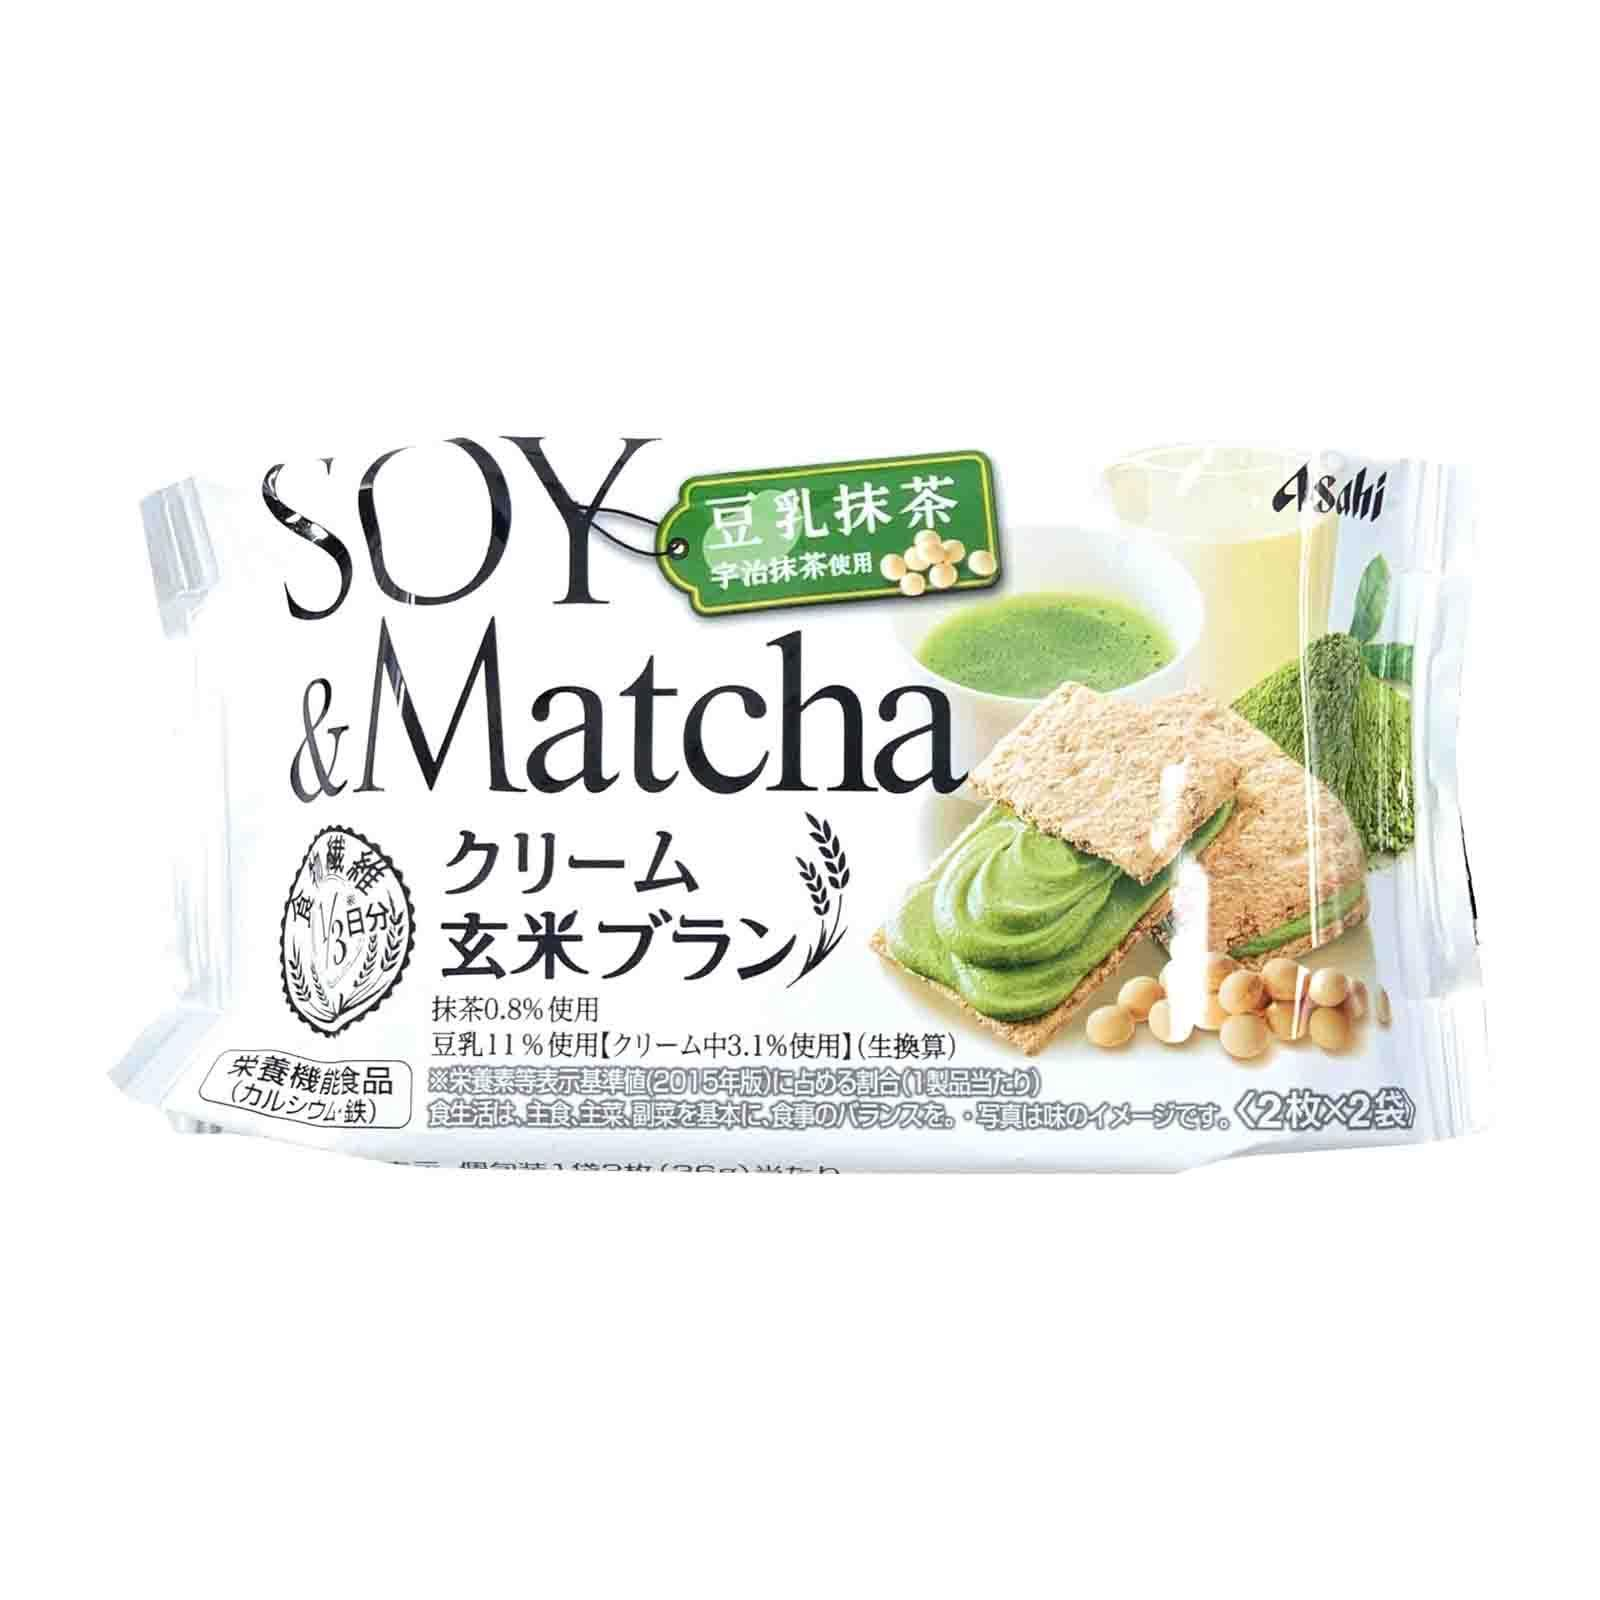 Asahi Soy Milk Matcha Cream Brown Rice Bran Cookie